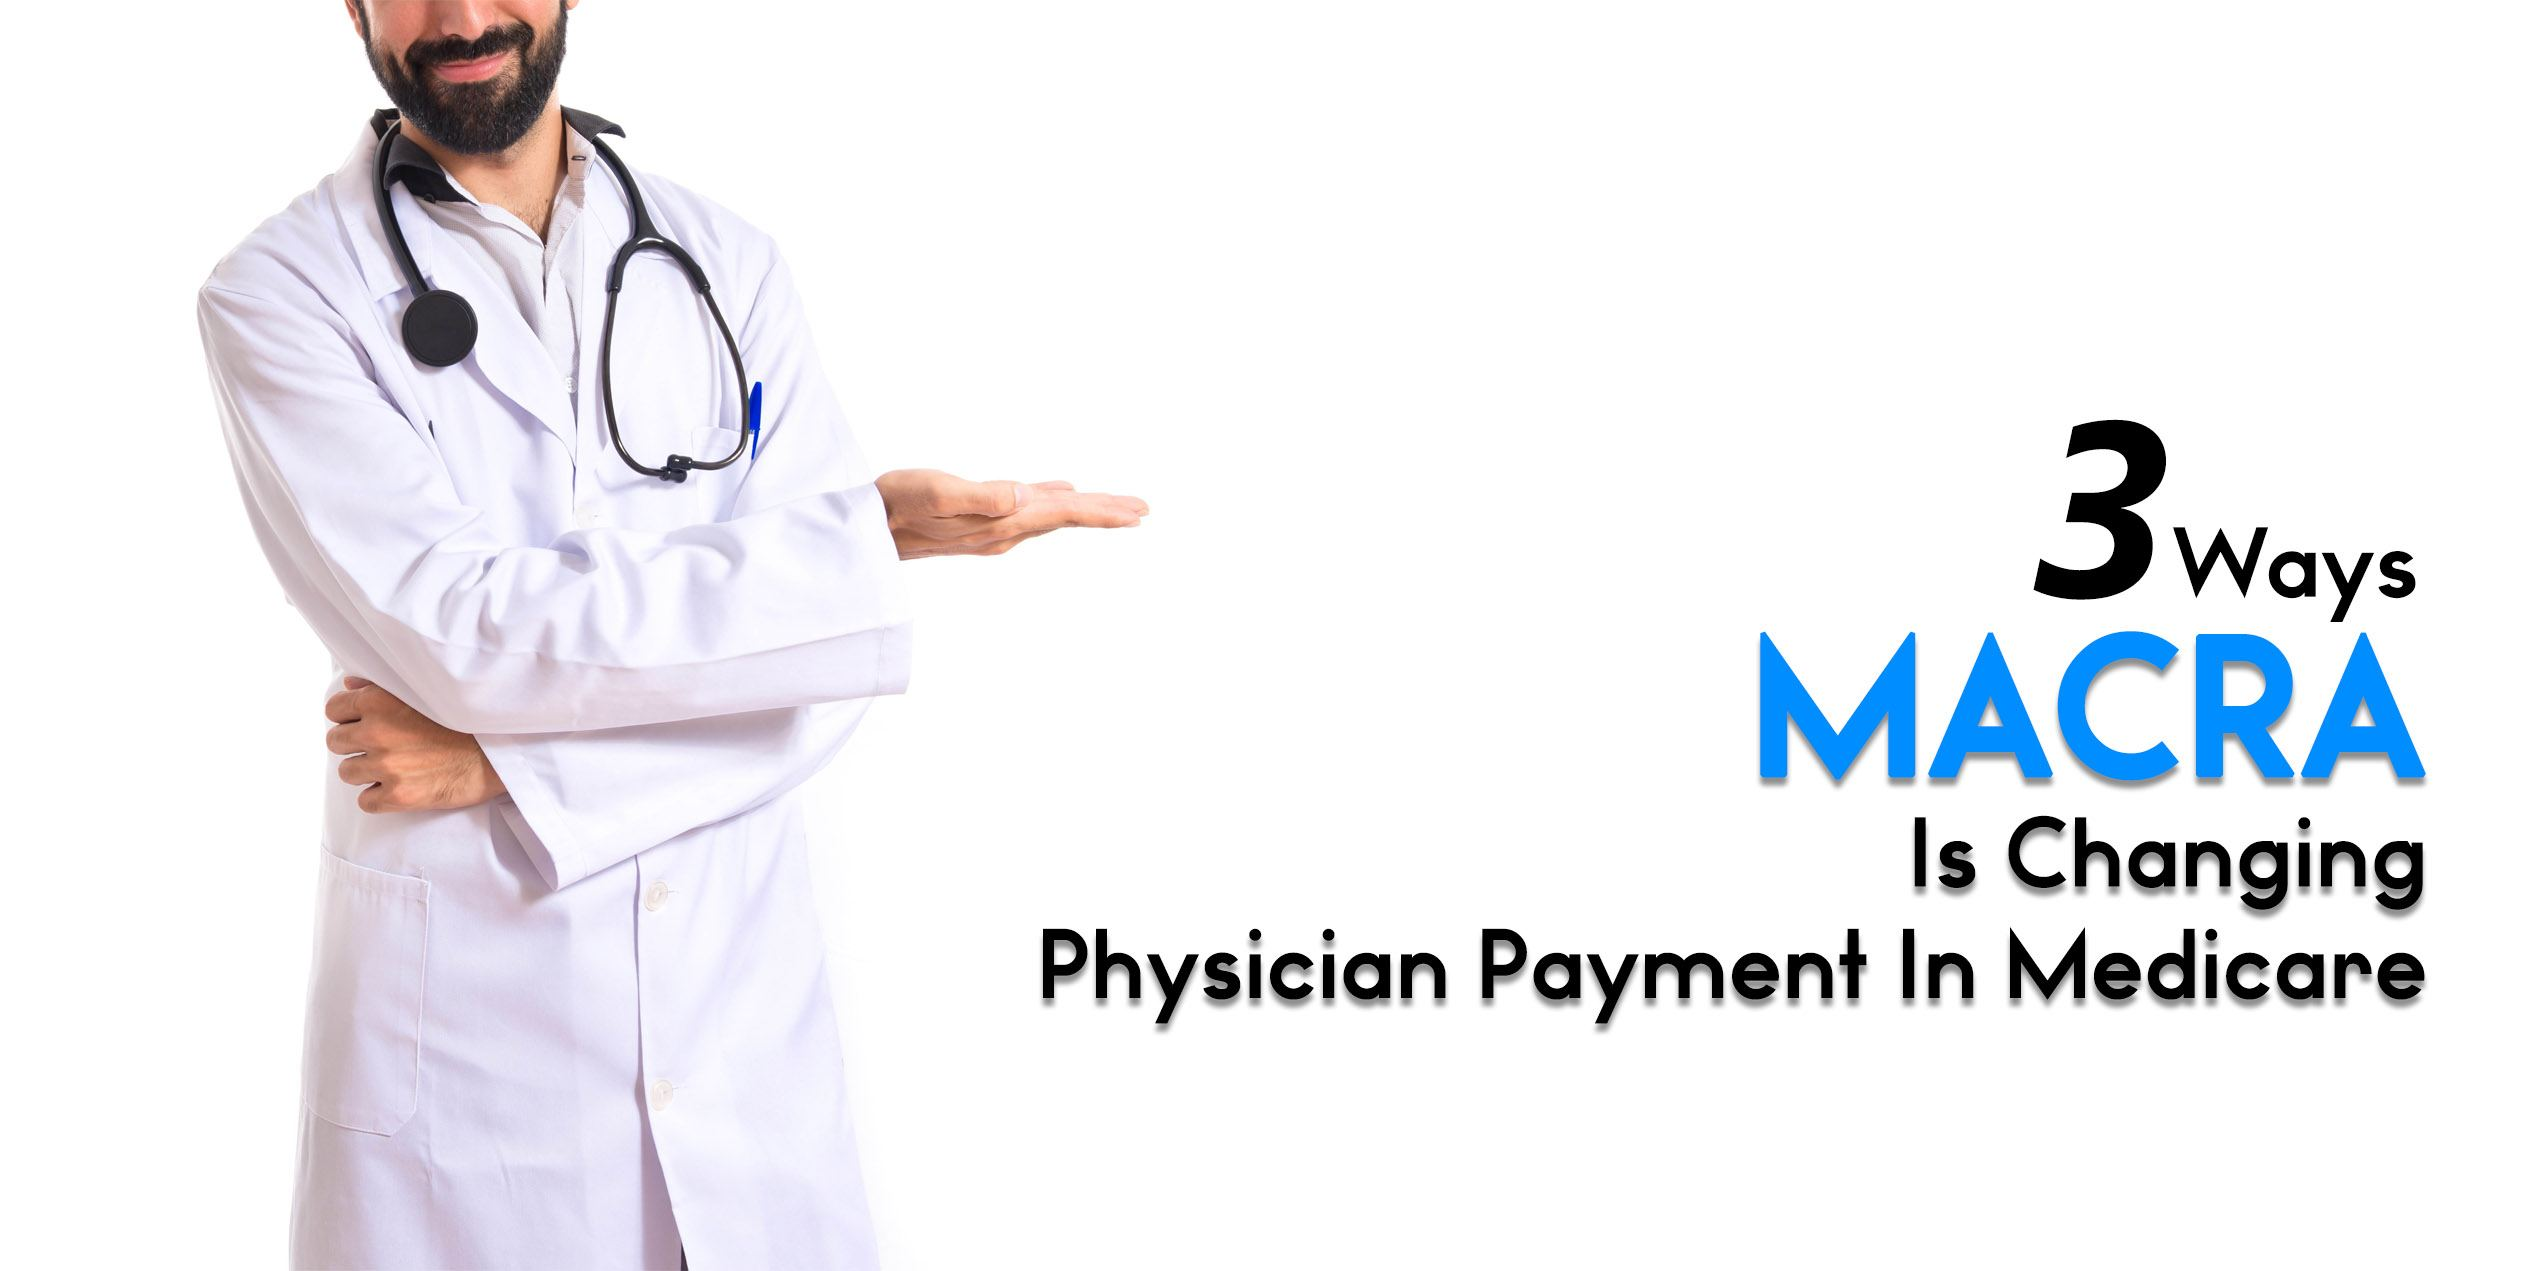 3 Ways MACRA Is Changing Physician Payment In Medicare